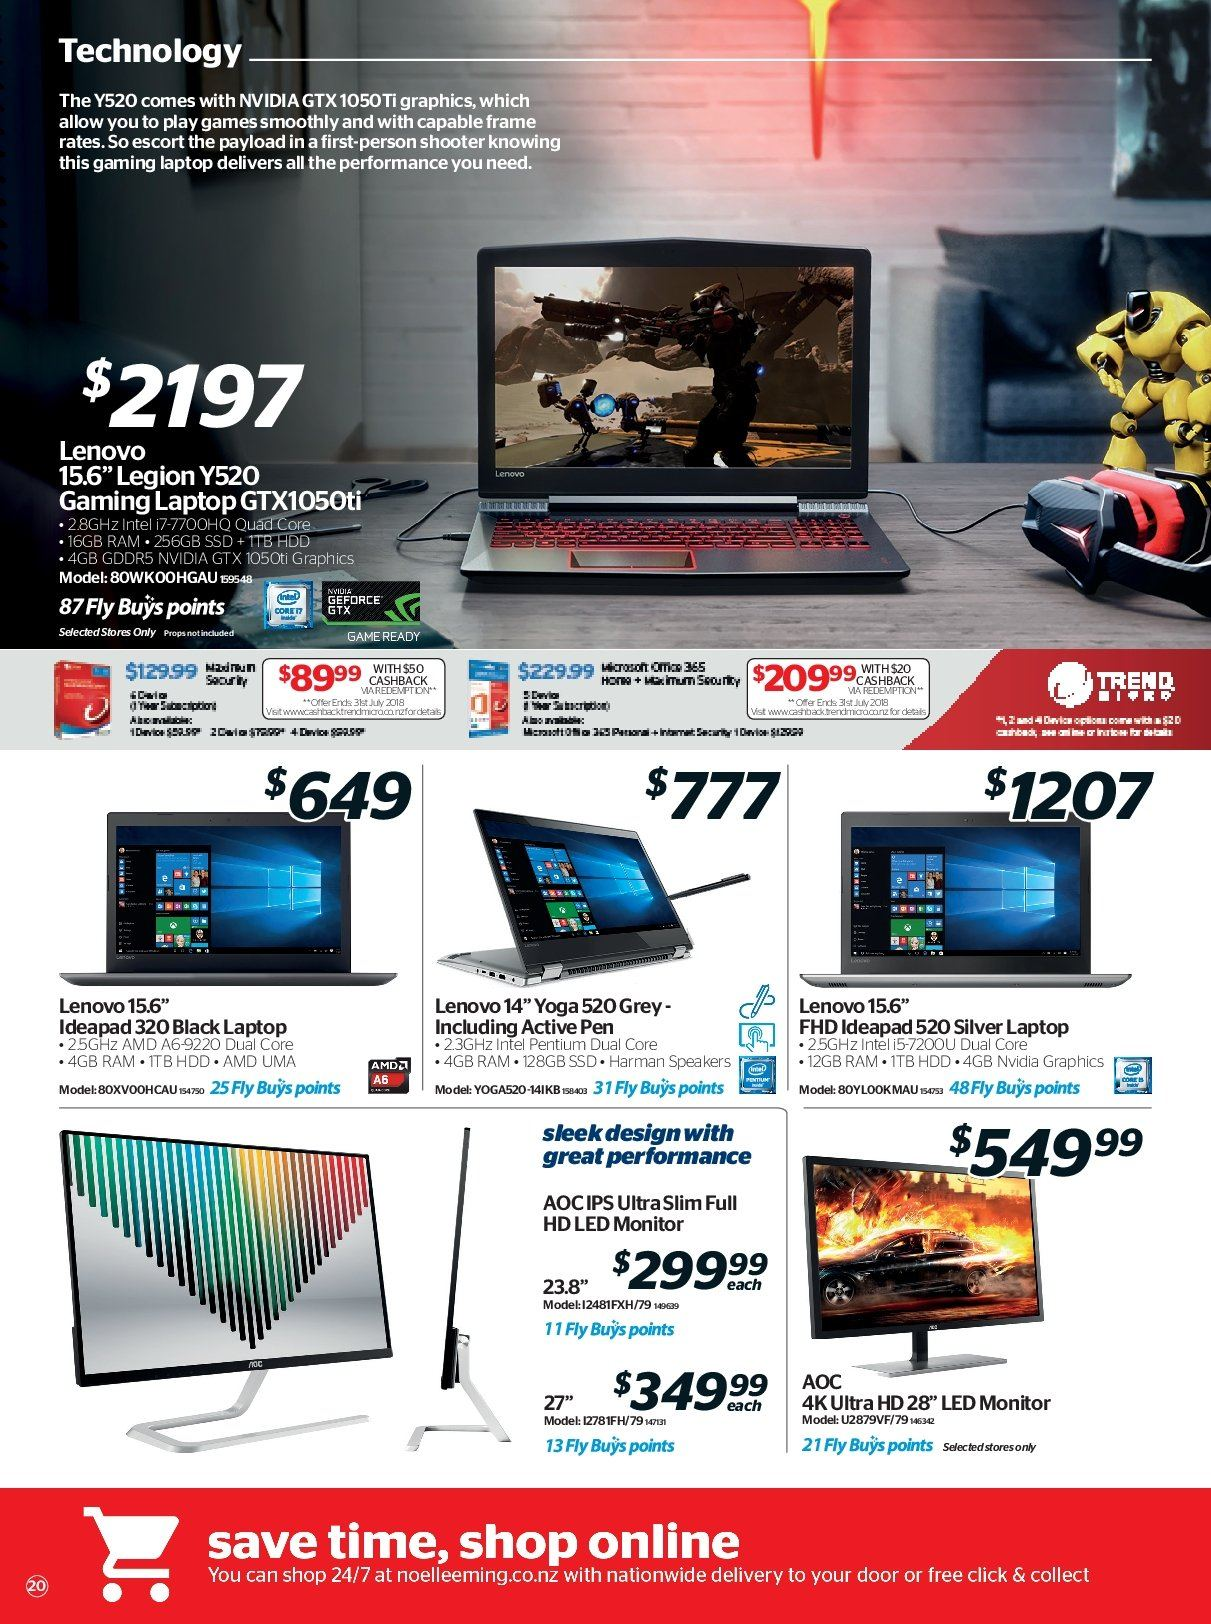 Noel Leeming mailer - 16.05.2018 - 29.05.2018 - Sales products - amd, door, frame, full hd, geforce, laptop, lenovo, monitor, speaker, uhd tv, ultra hd, hdd, intel, pentium, nvidia, pen, ssd. Page 20.